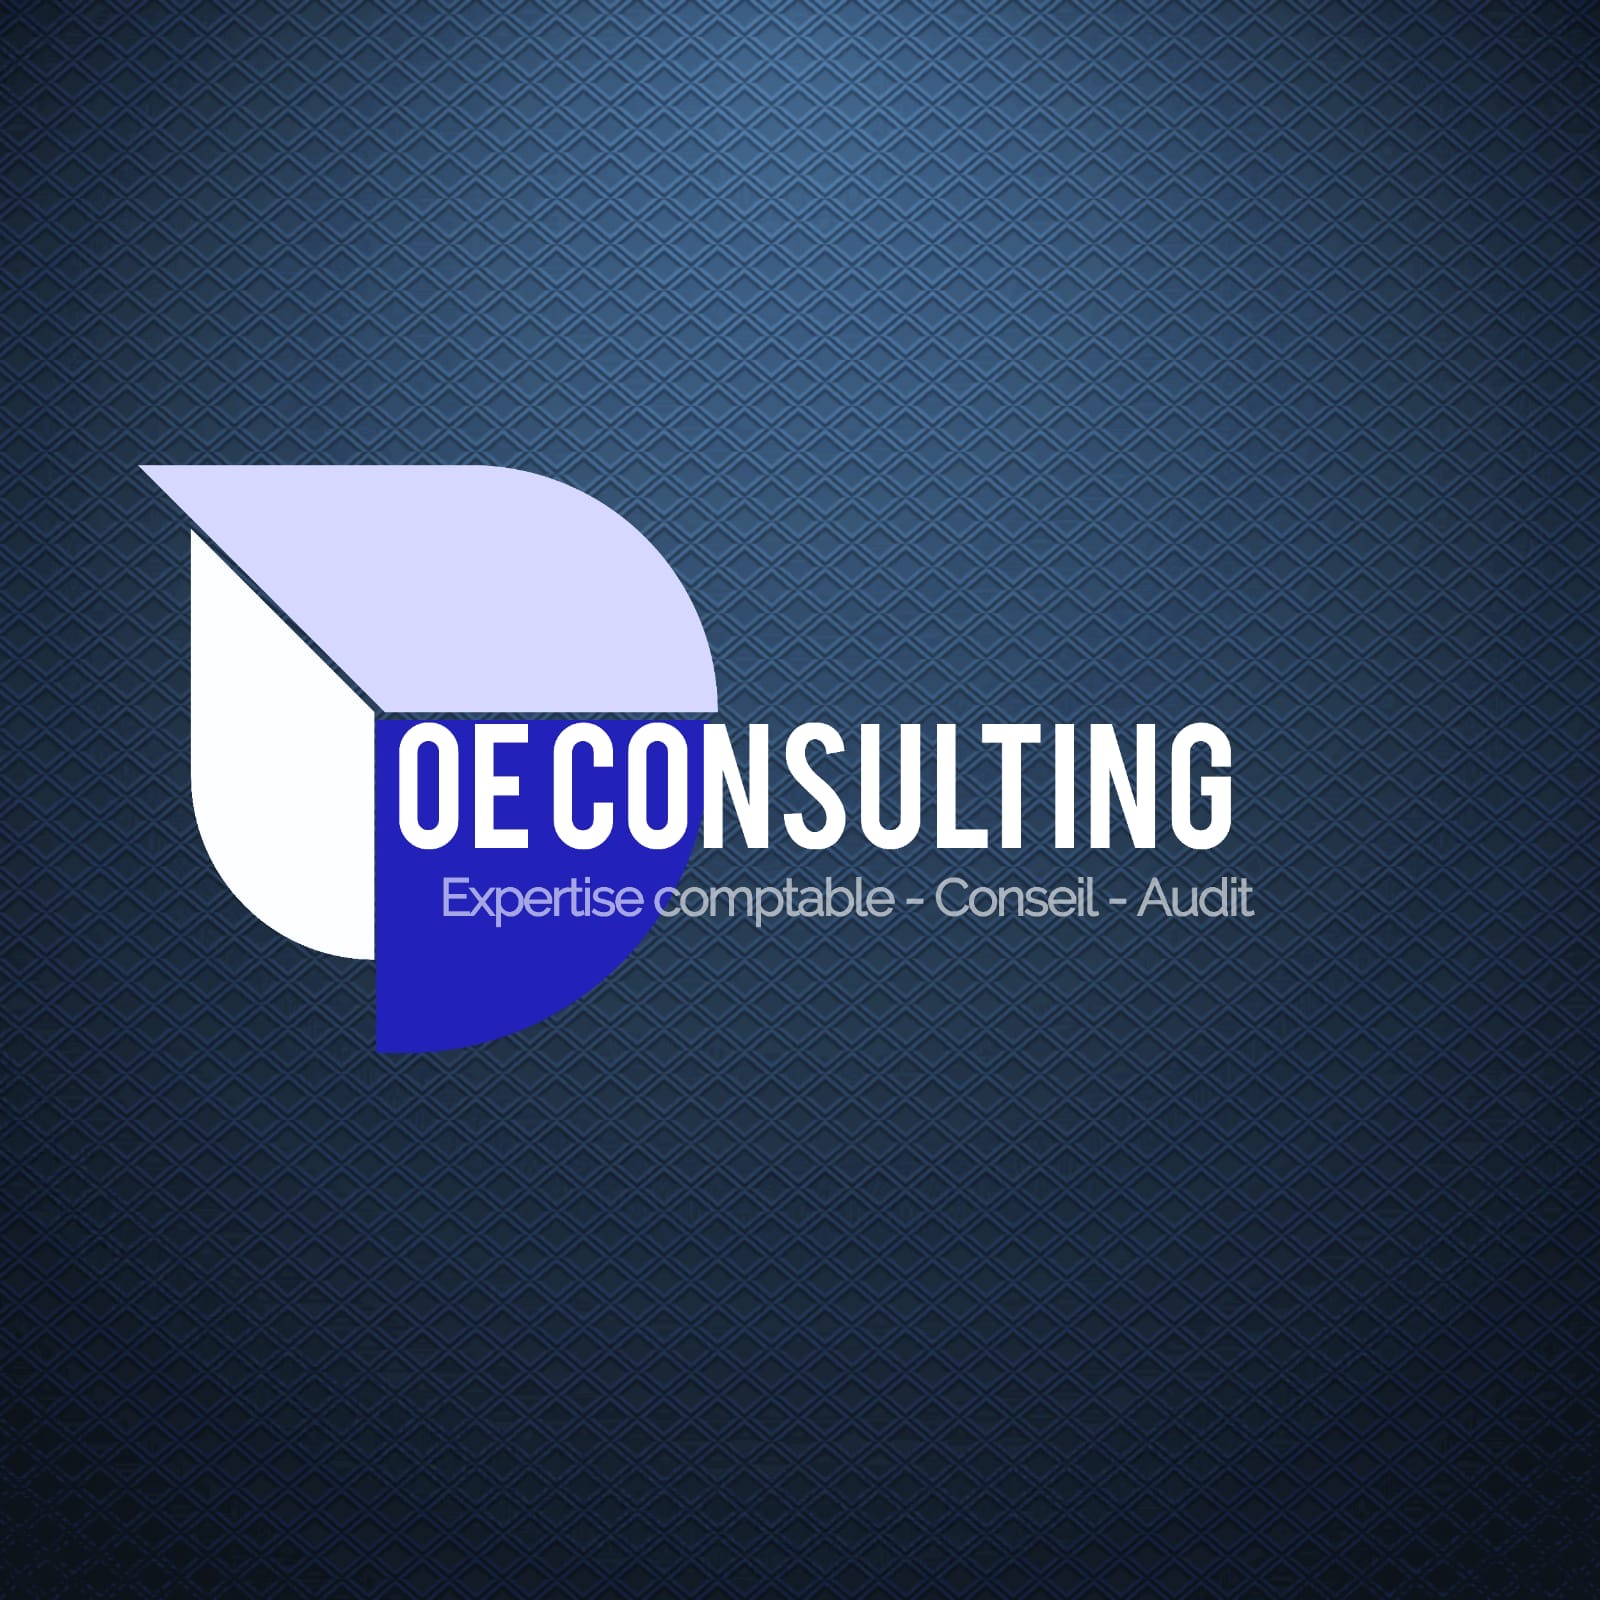 OE CONSULTING